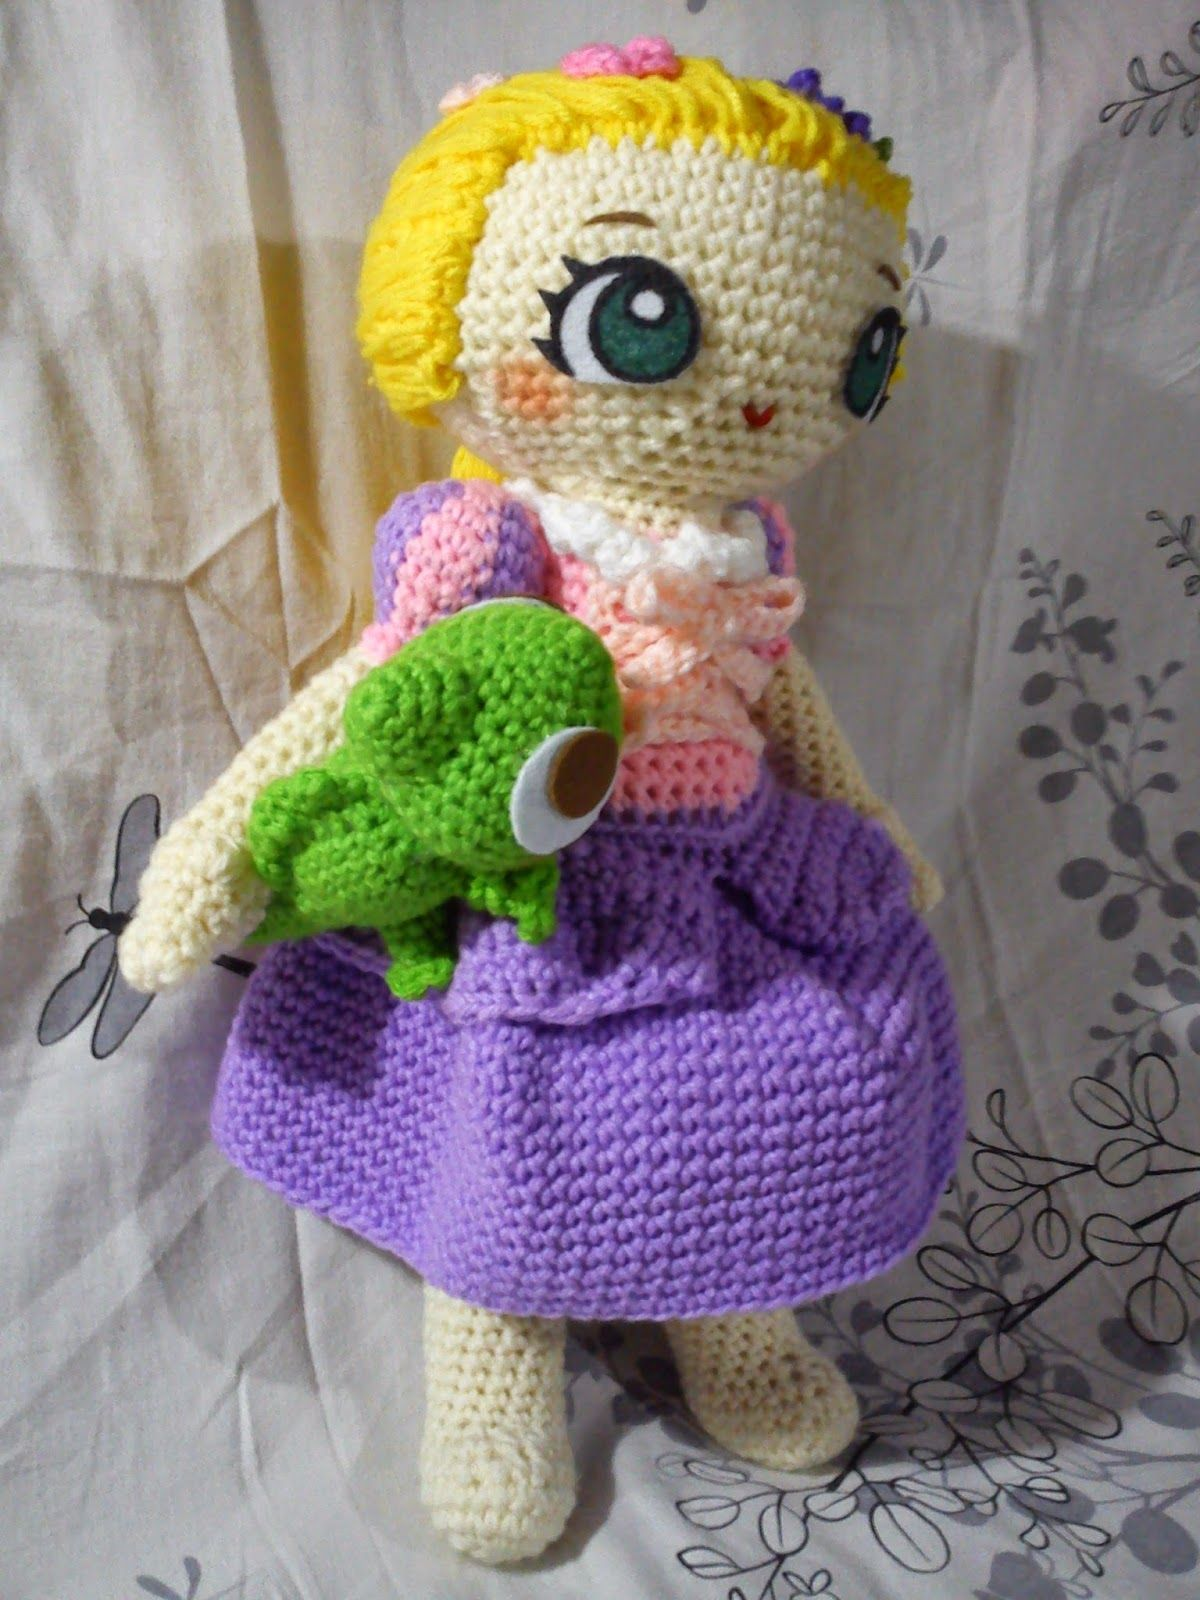 A sweet chameleon, it's Pascal from Tangled! | Disney crochet ... | 1600x1200